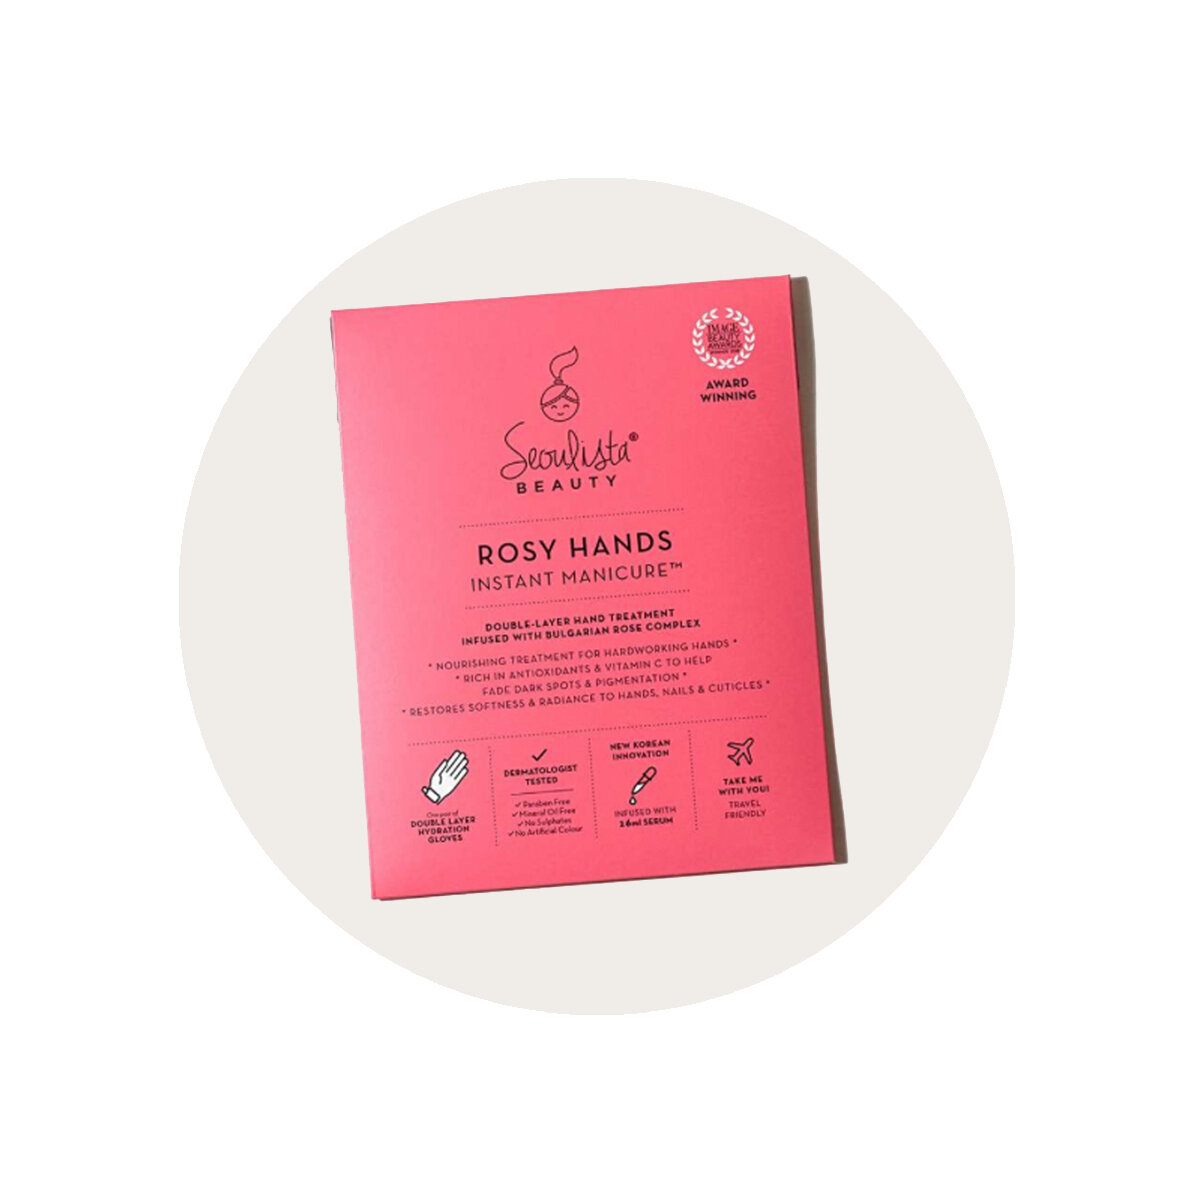 Seoulista Beauty Rosy Hands Instant Manicure Mask